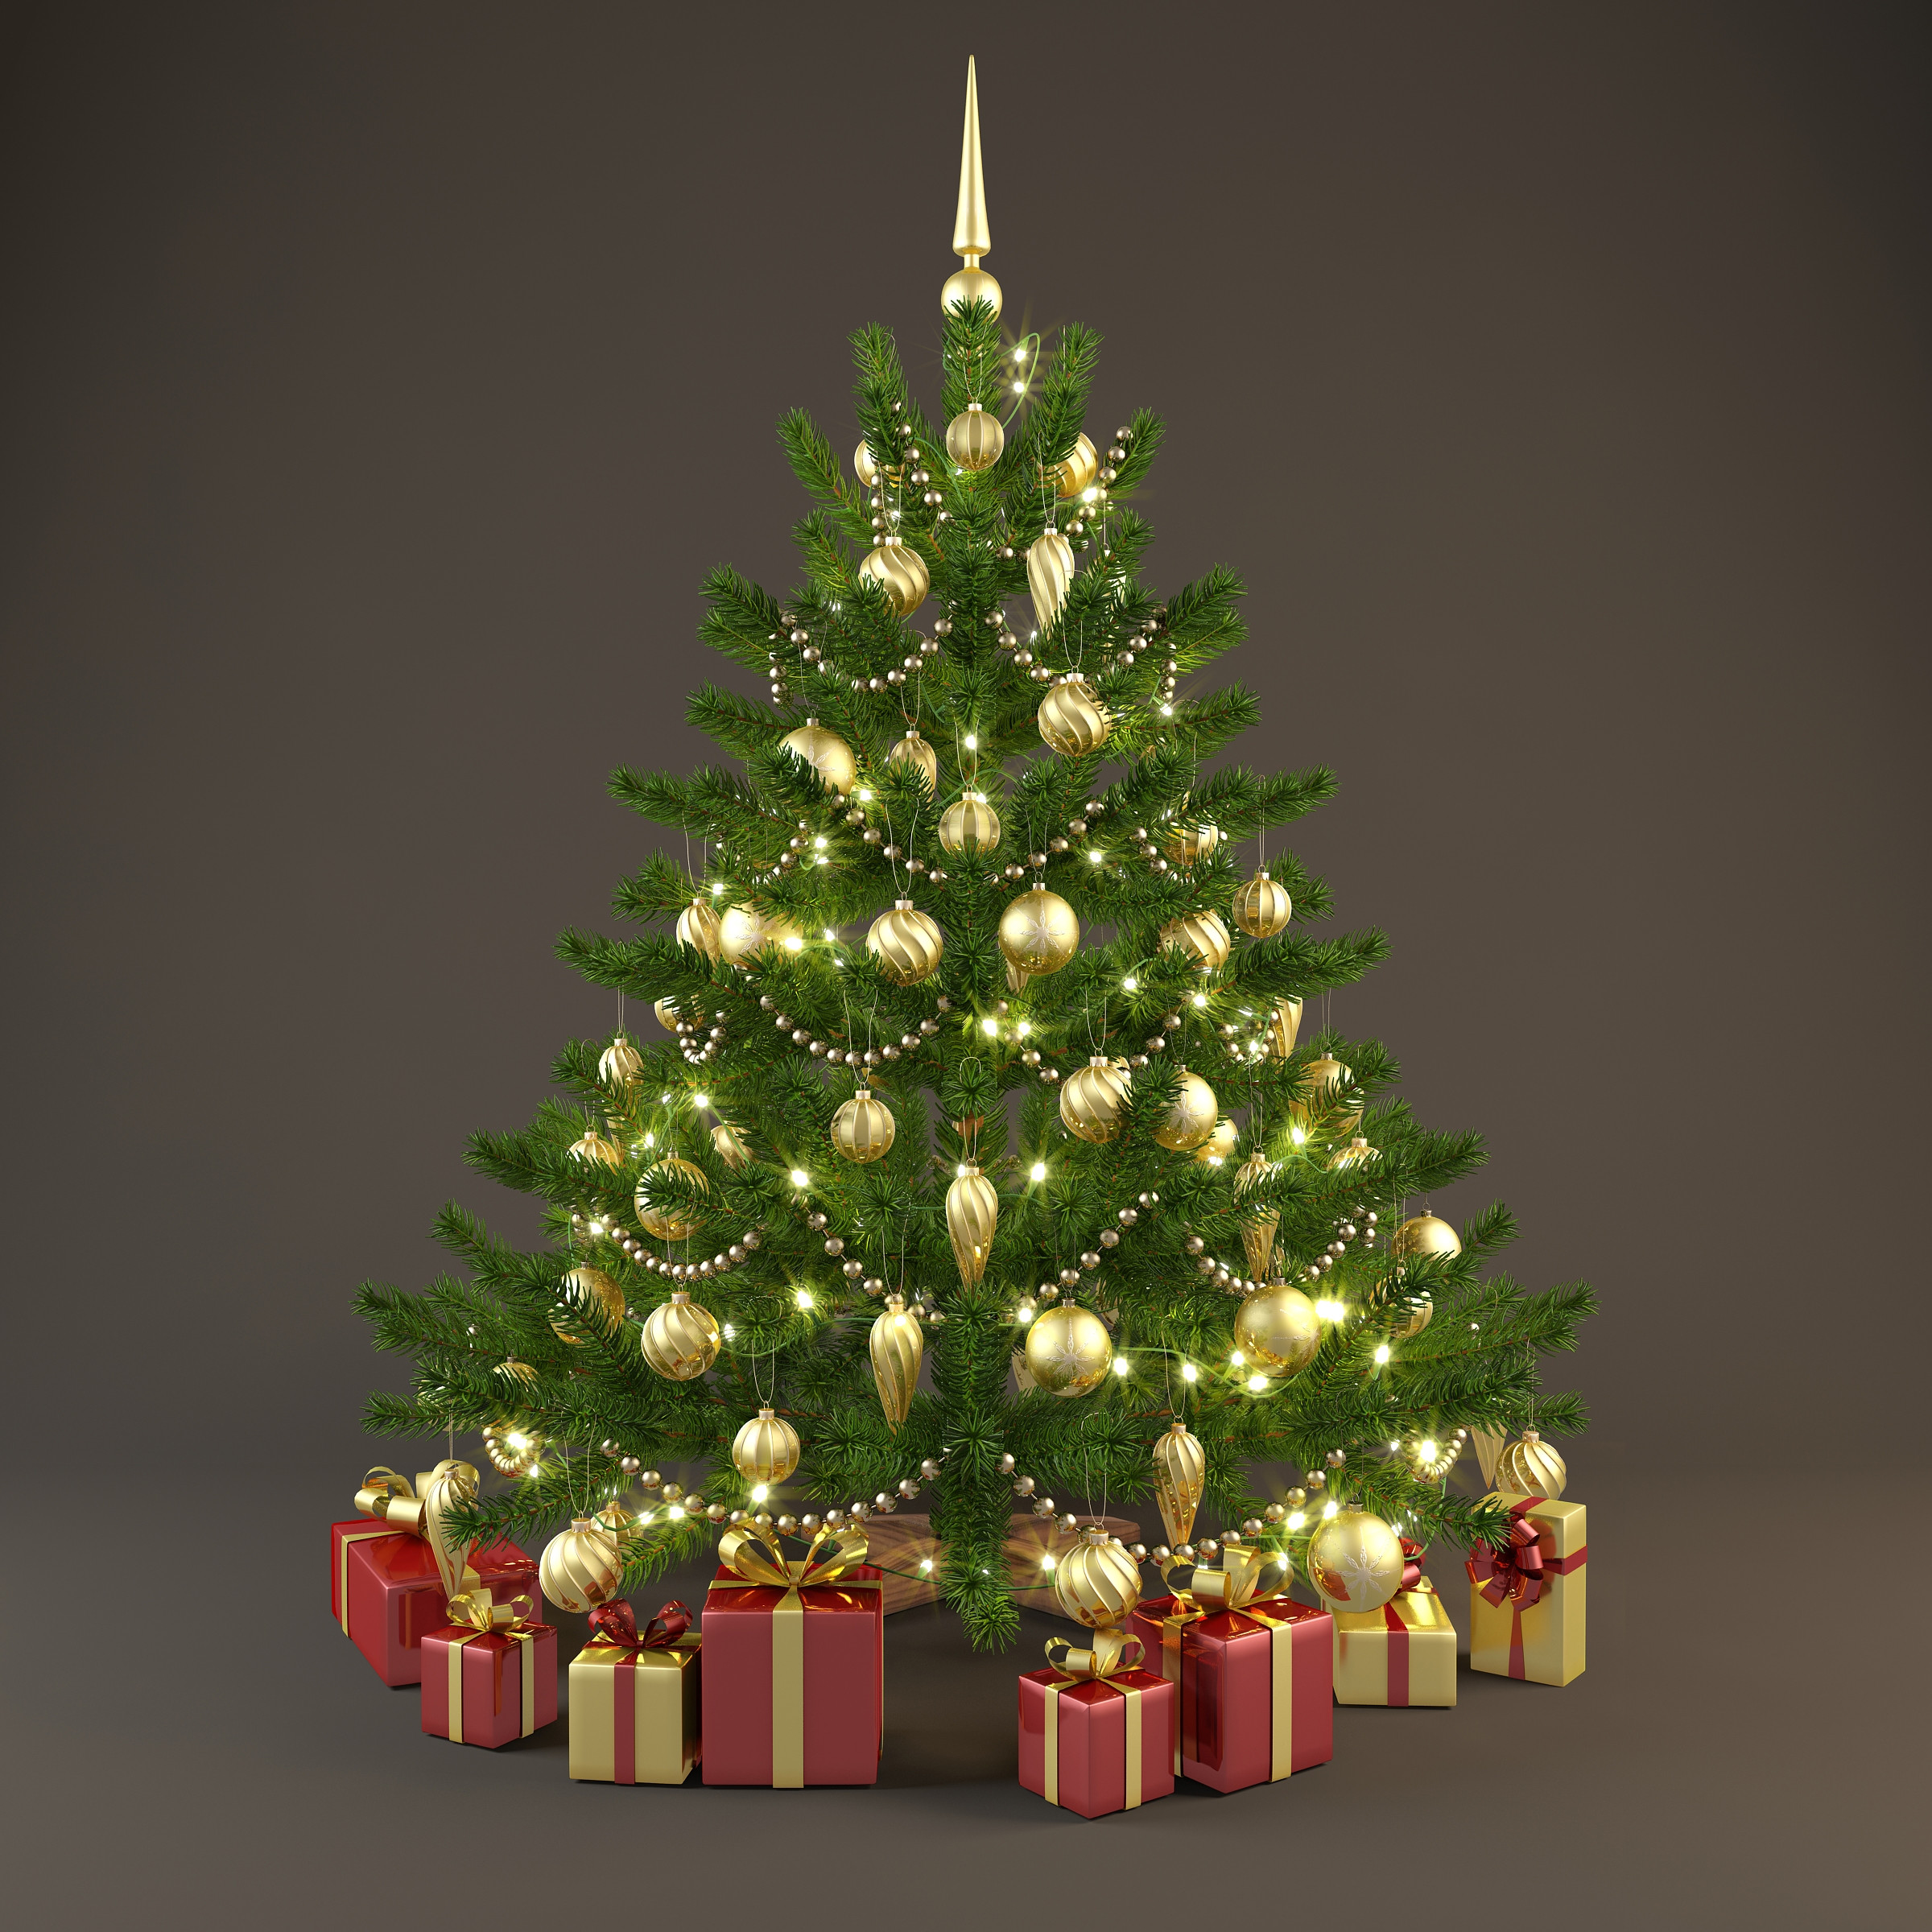 Christmas tree_chek5.jpg